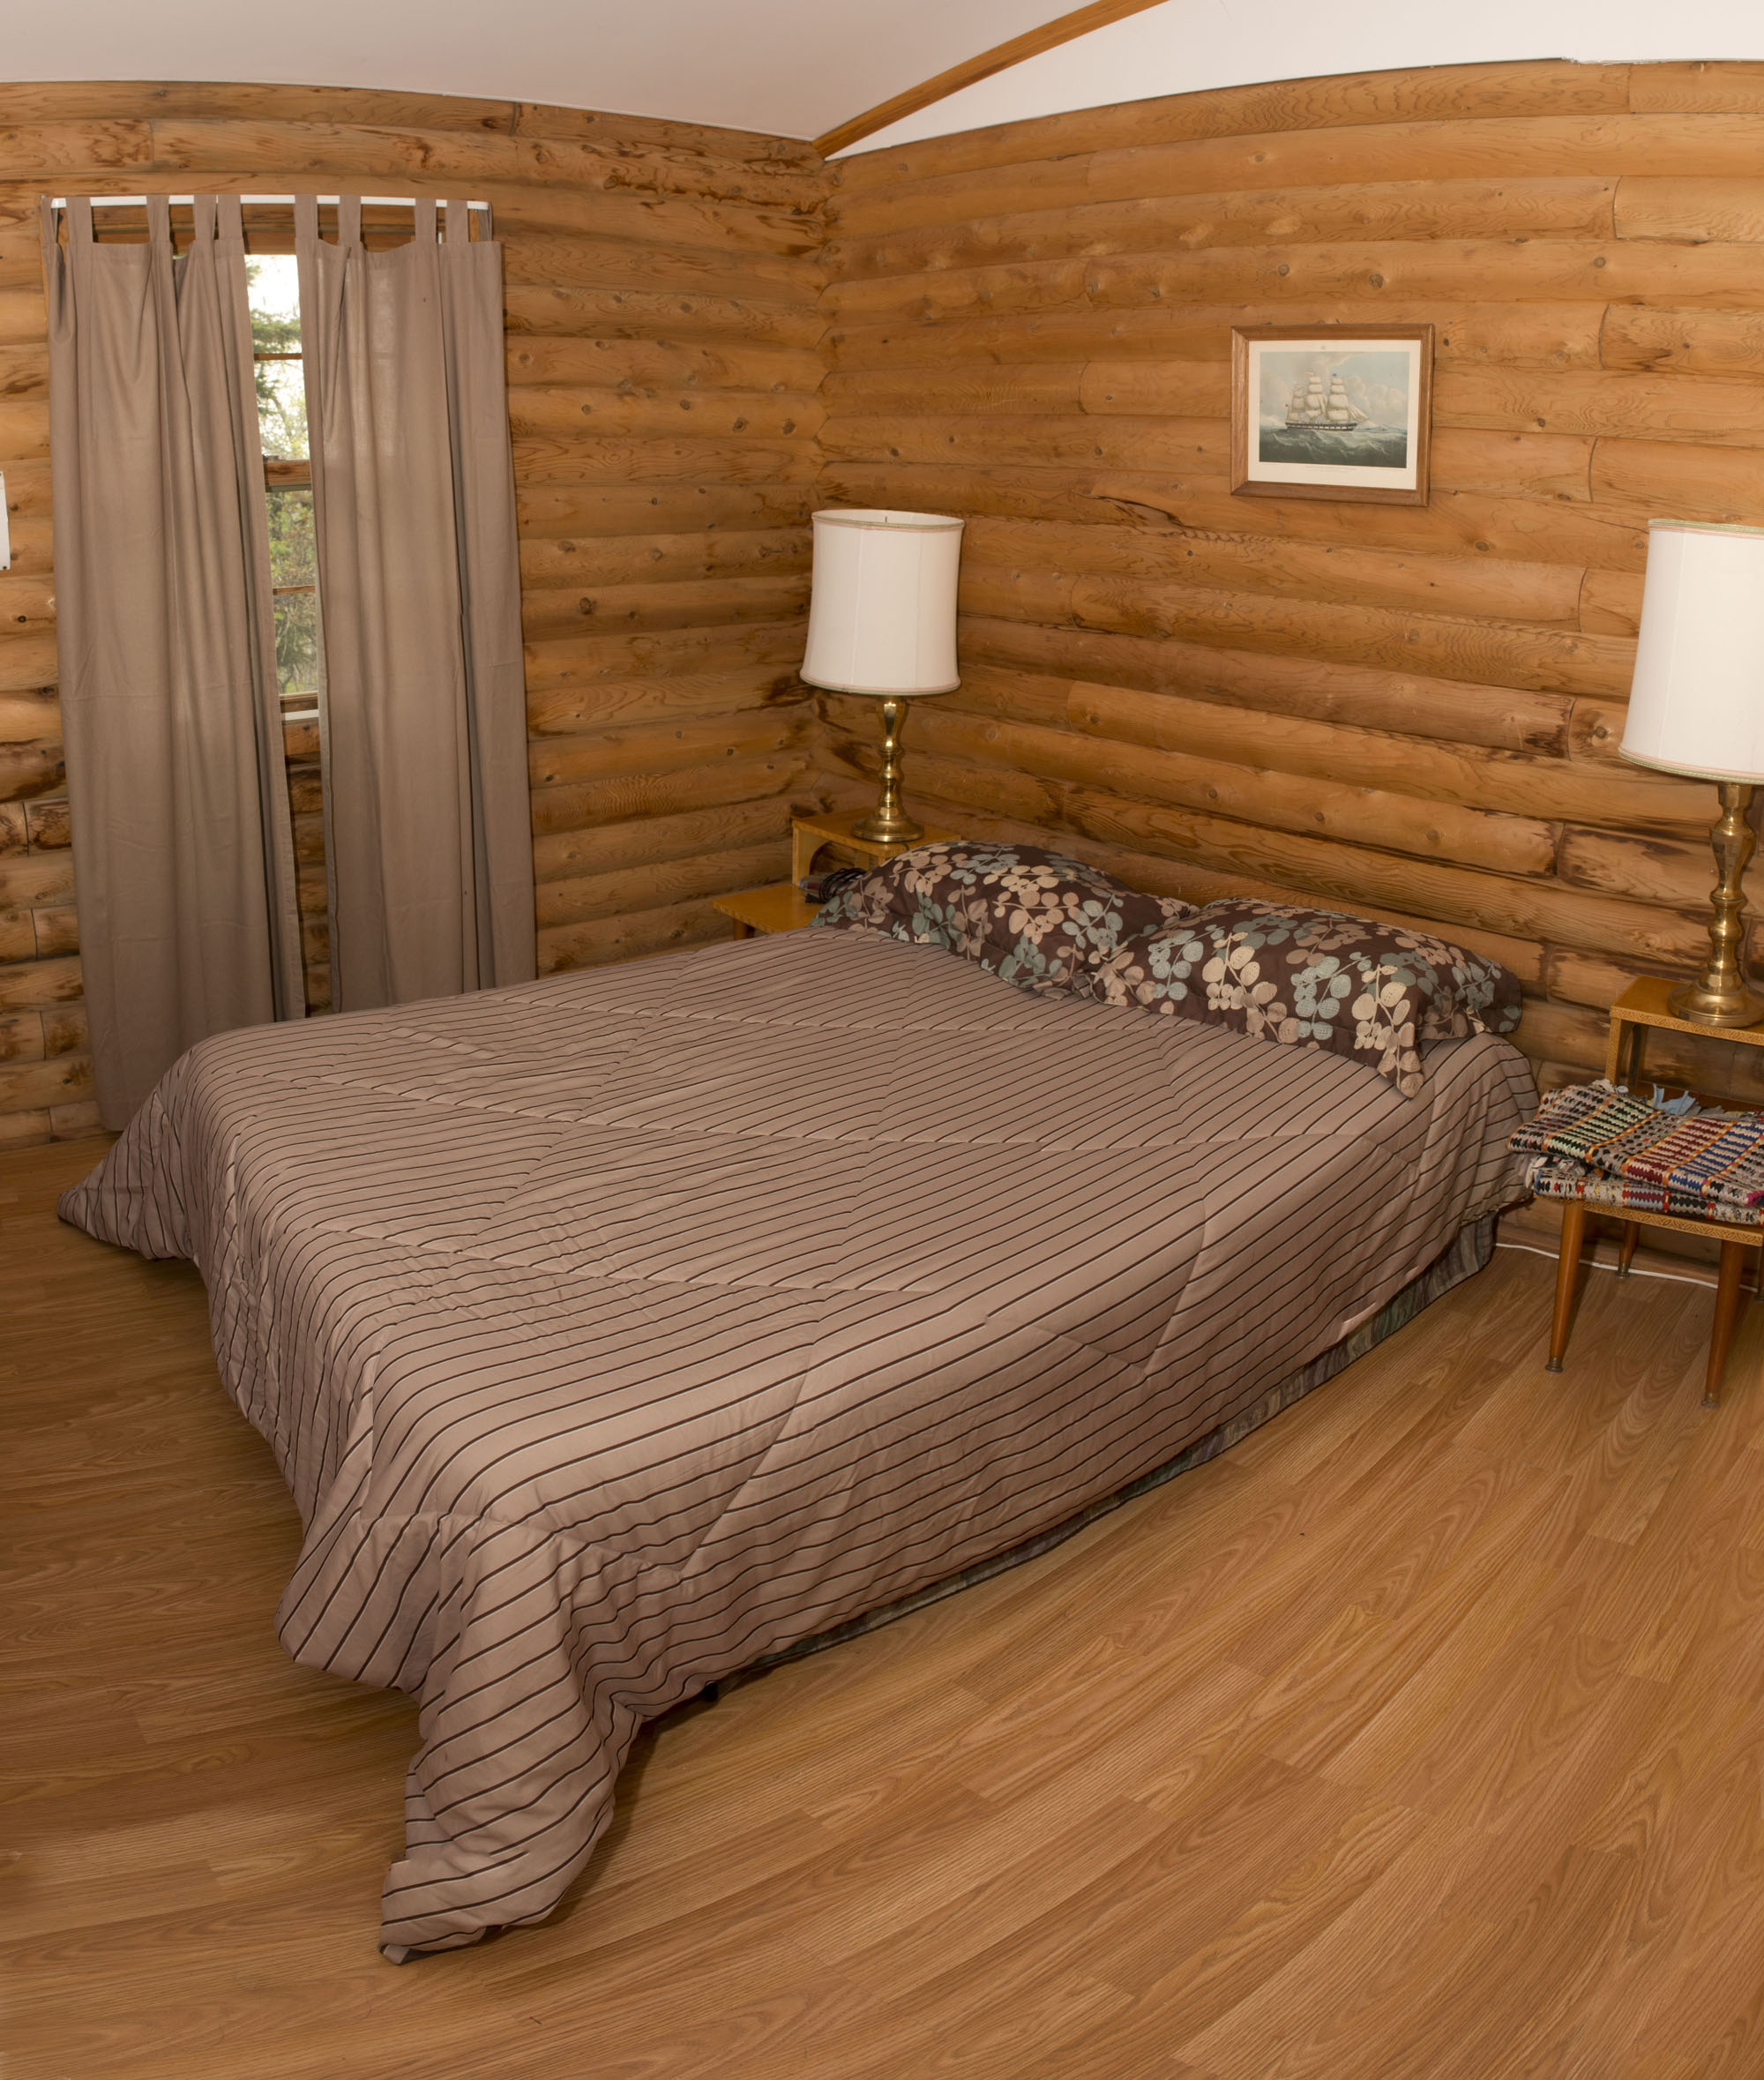 Cabin #9 - 2nd Bedroom Panorama (Cabin #8 shares identical layout & amenities)